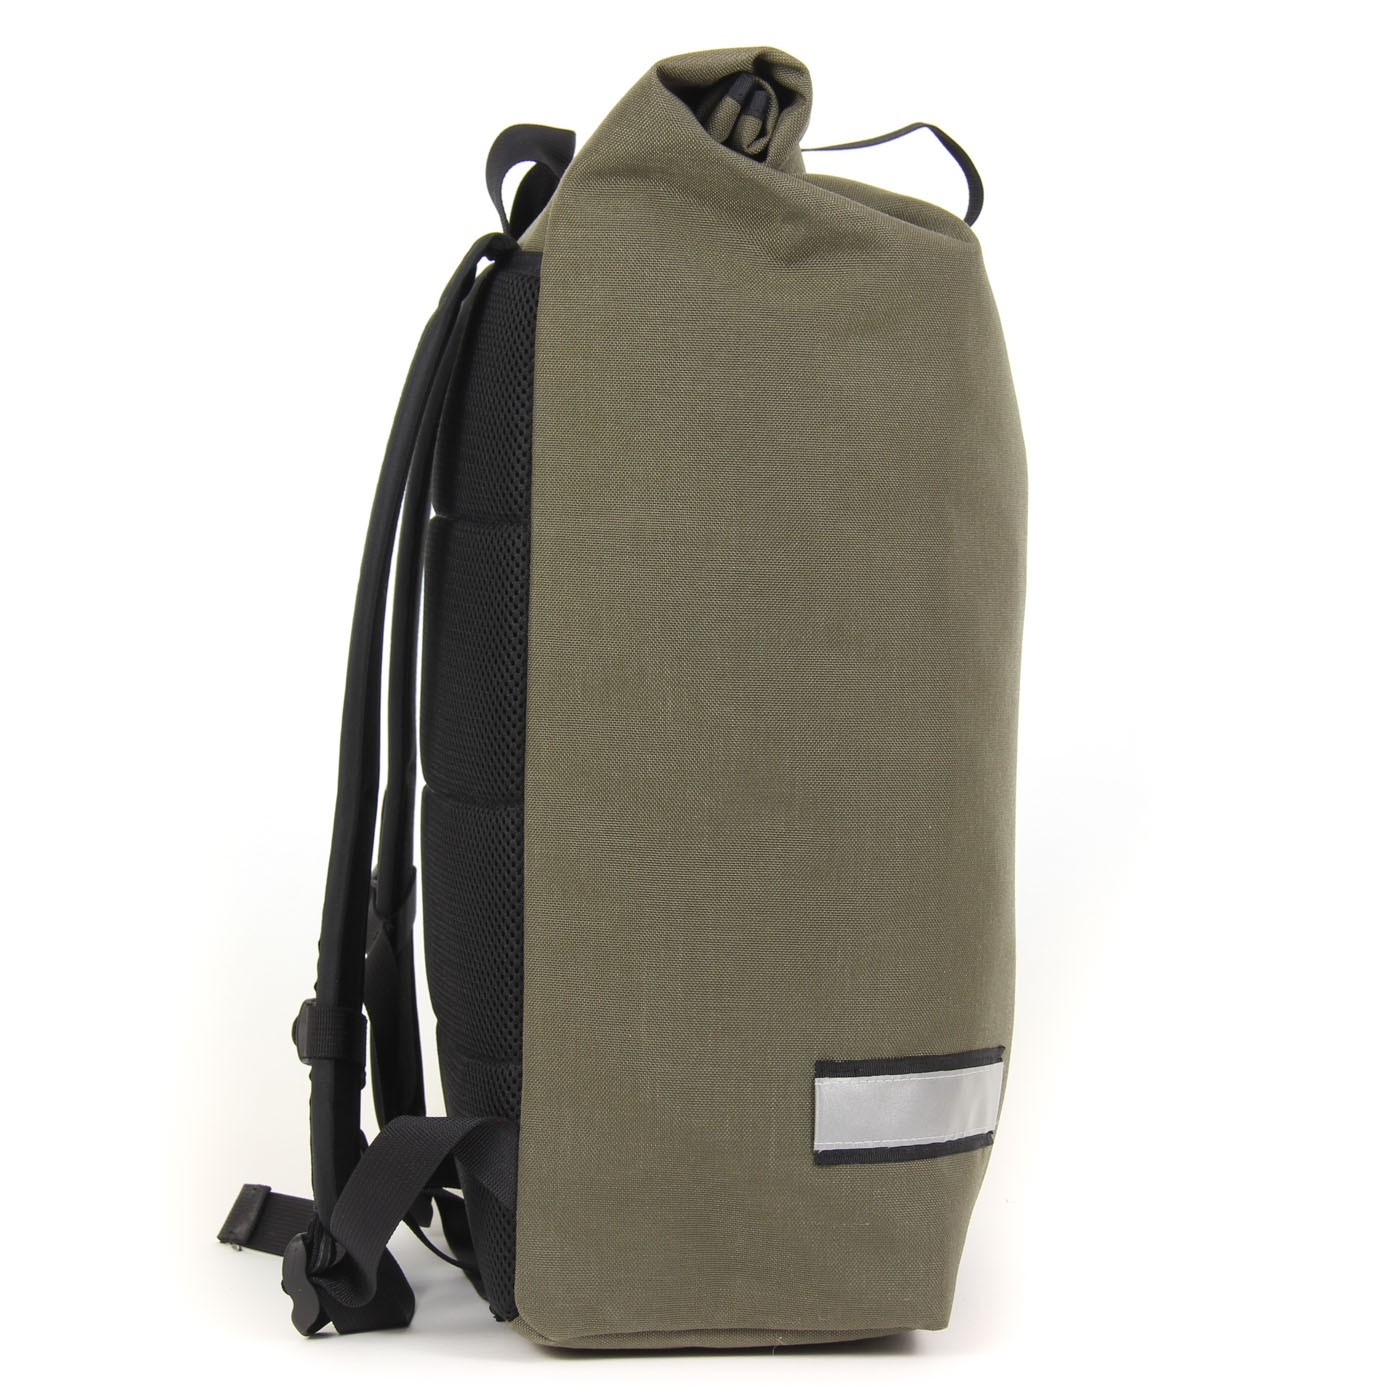 Signature D Bike Backpack - Waterproof Laptop Backpack